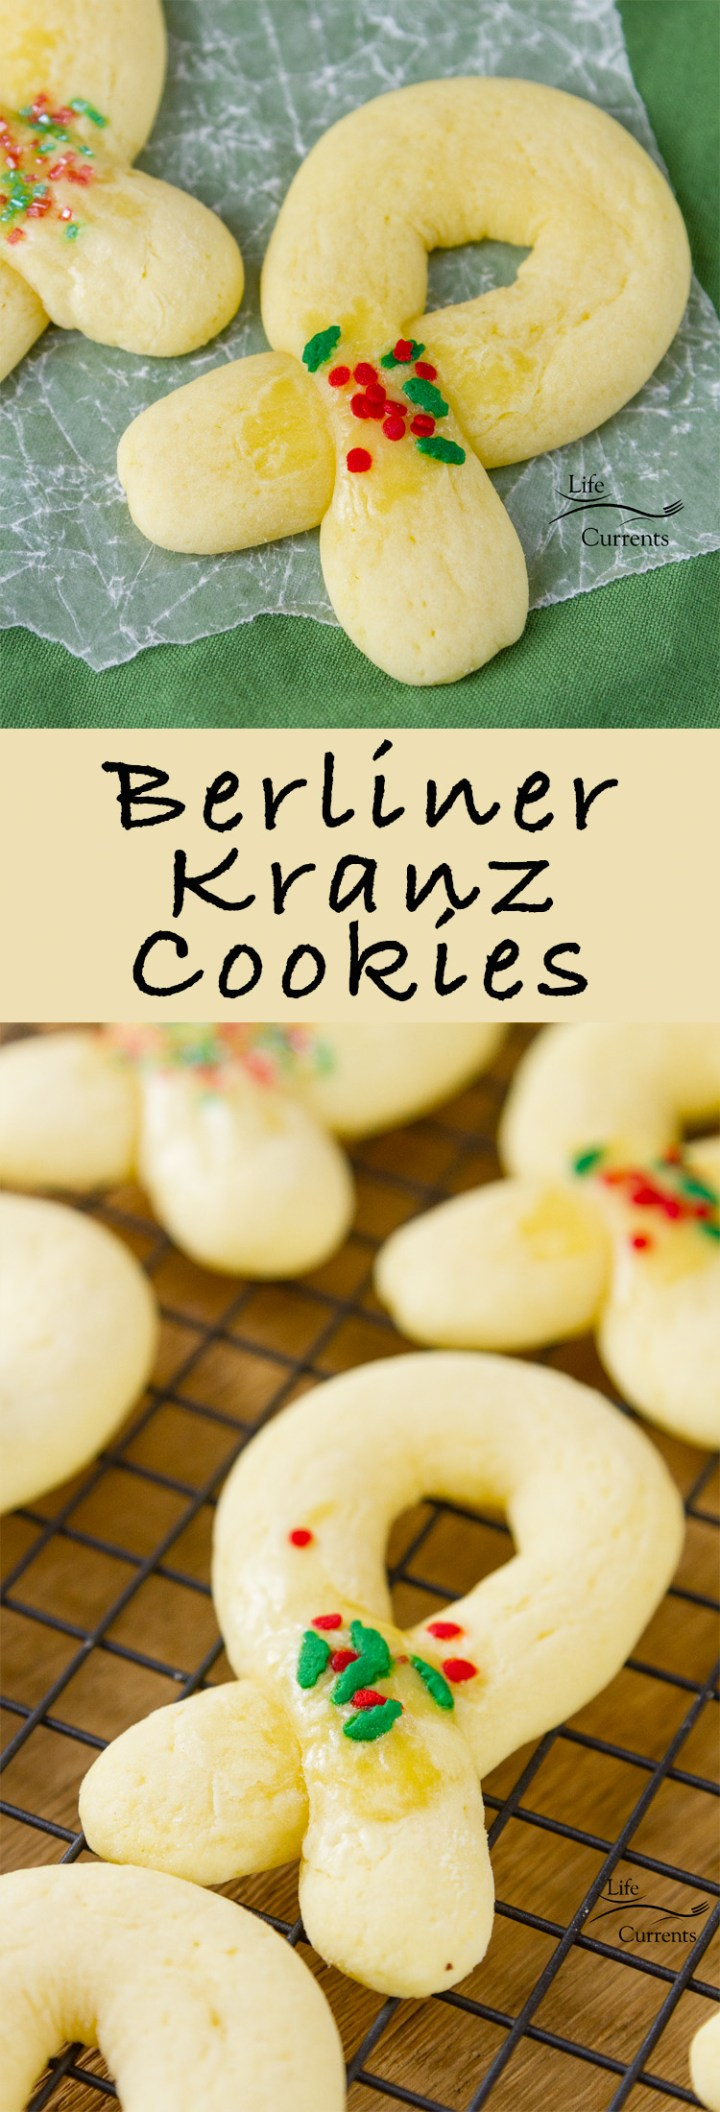 """Berliner Kranz Cookies are Norwegian Christmas Cookies which translate into """"Berlin Wreaths"""" - traditionally made into wreath shapes & decorated with some little bit of red and green sugars - great for cookie exchanges"""